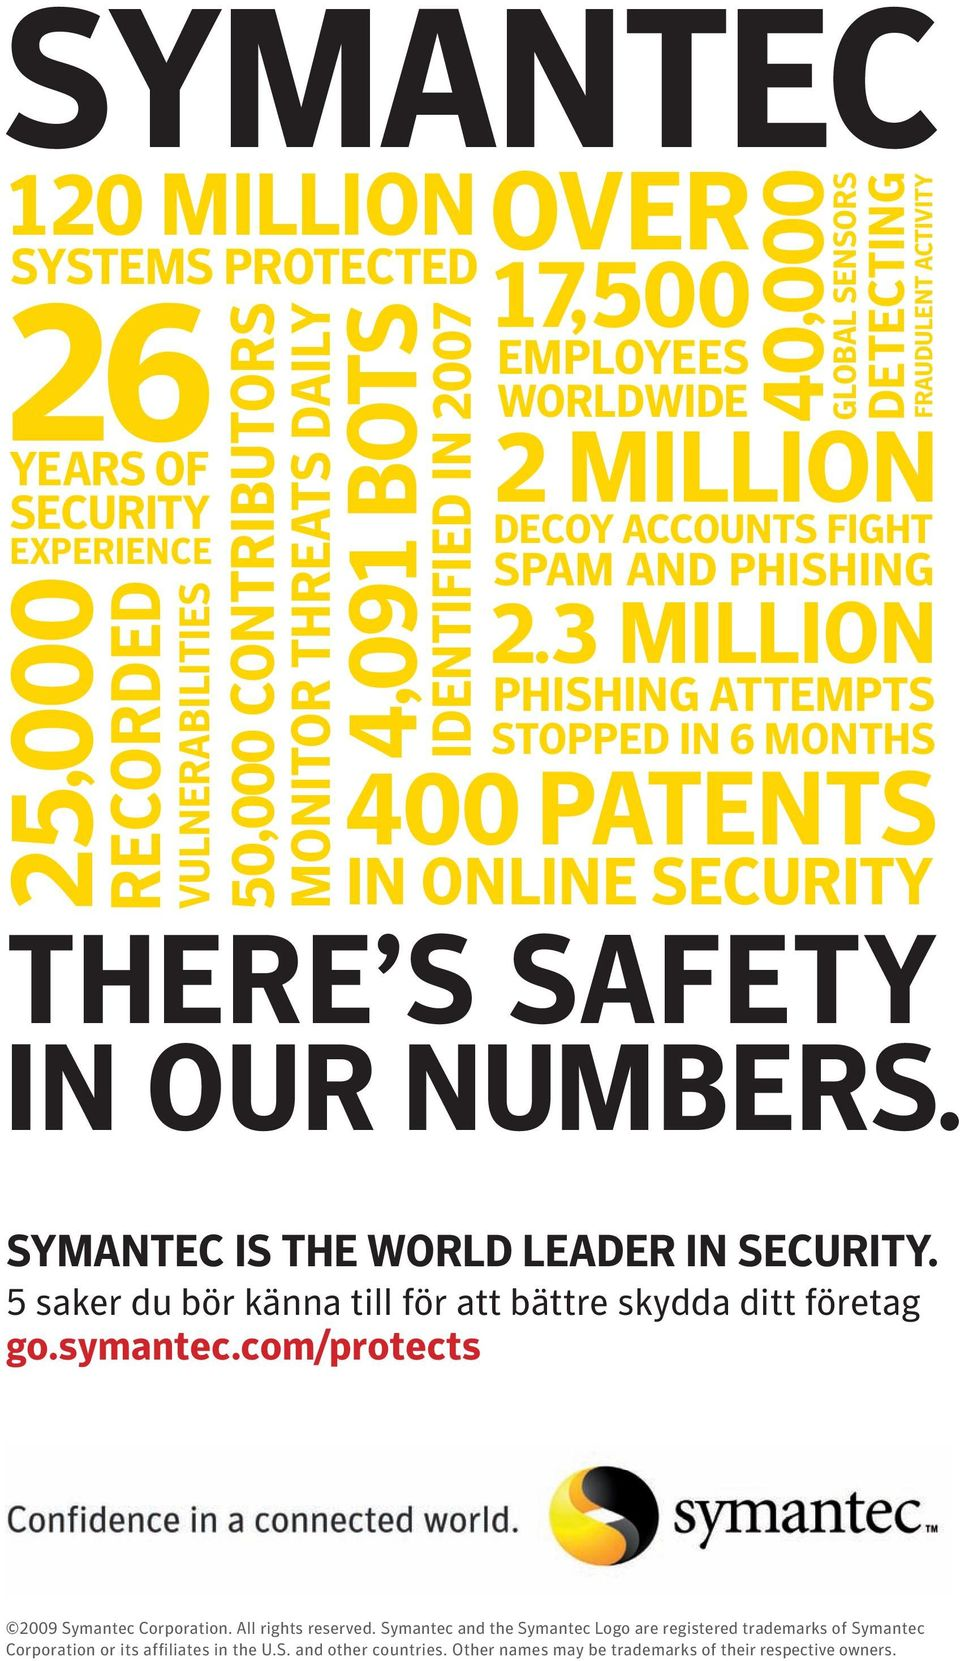 3 MILLION PHISHING ATTEMPTS STOPPED IN 6 MONTHS 400 PATENTS IN ONLINE SECURITY THERE S SAFETY IN OUR NUMBERS. SYMANTEC IS THE WORLD LEADER IN SECURITY.